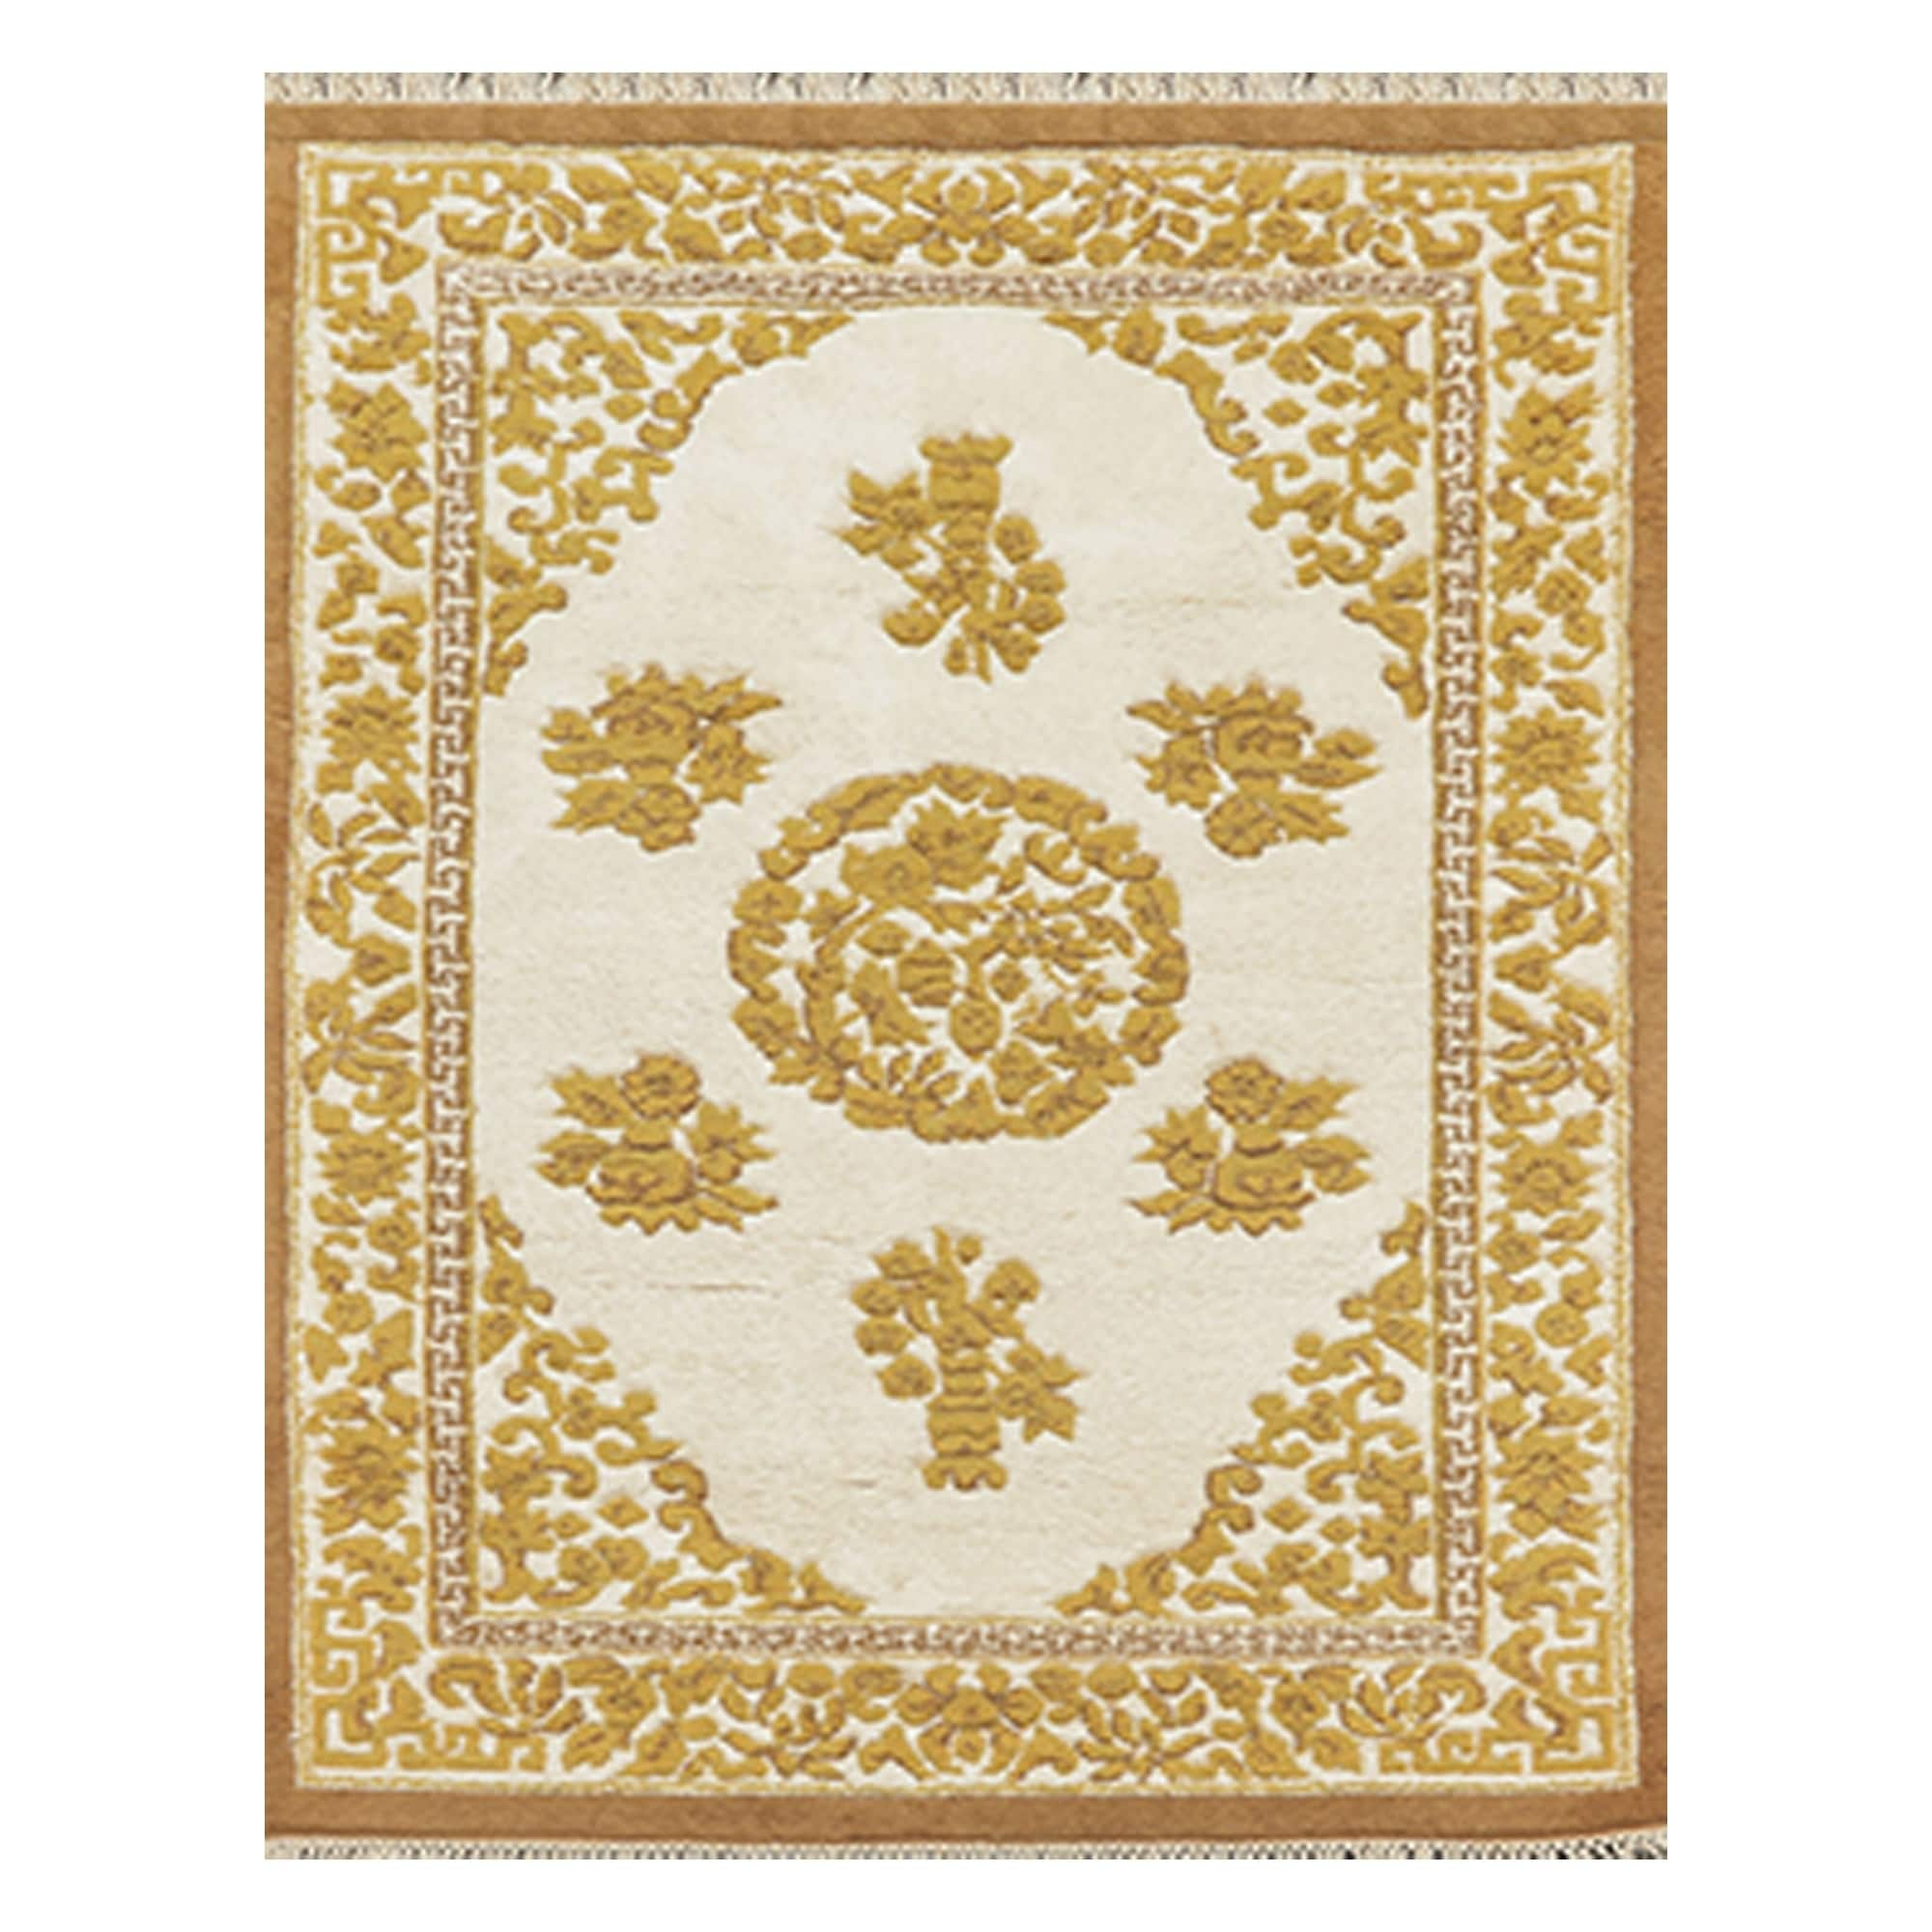 Shop For Kerman Hand Knotted Beige Mustard Wool Persian Oriental Area Rug 4 X5 11 4 1 X 6 2 Get Free Shipping On Everything At Overstock Your Online Home Decor Outlet Store Get 5 In Rewards With Club O 31149308